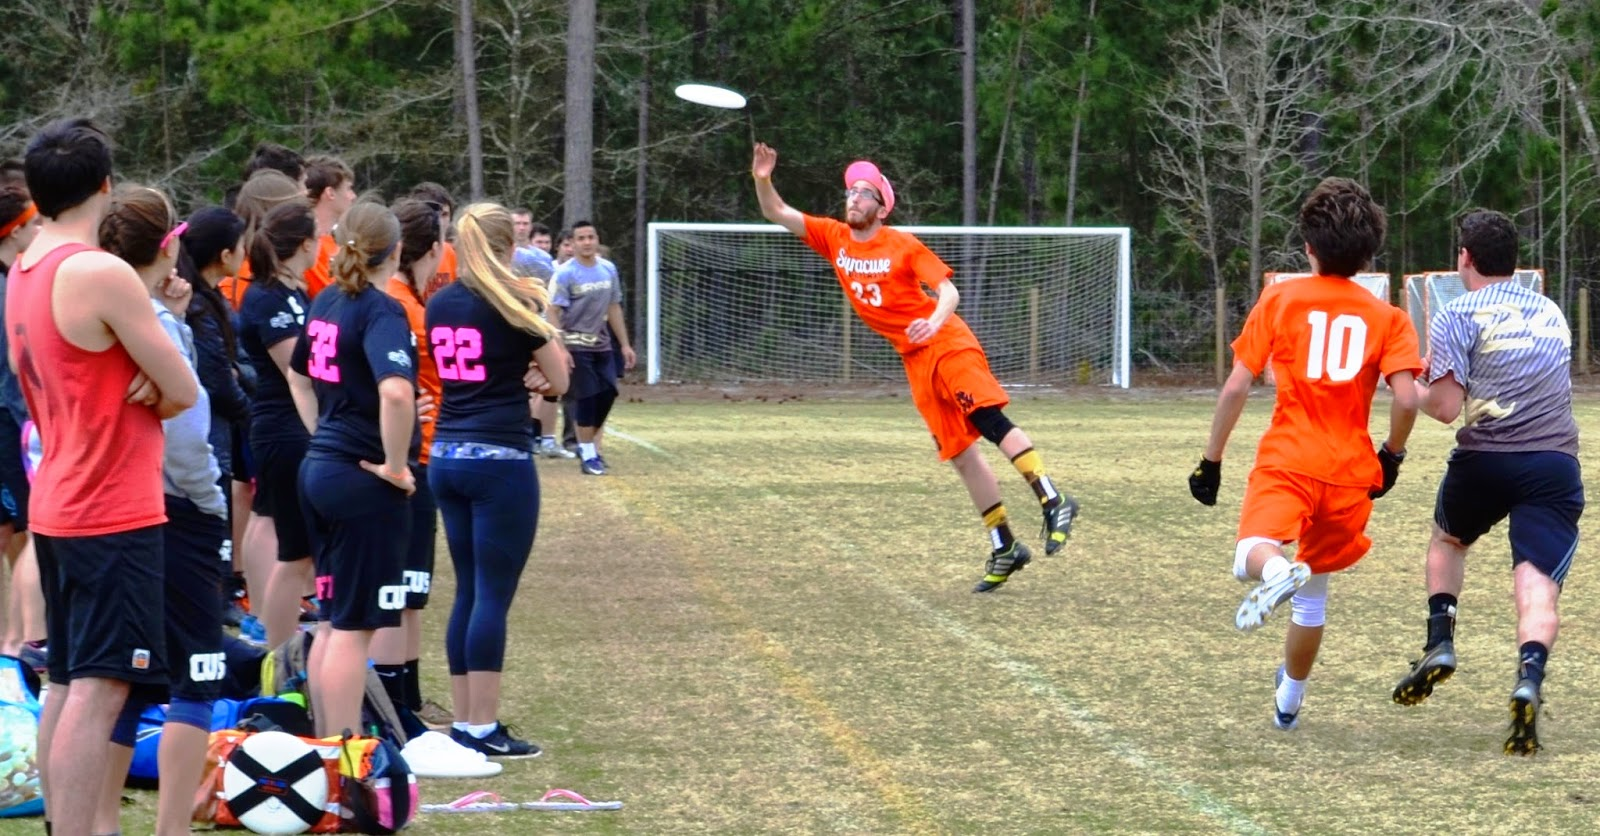 The City Of North Myrtle Beach And Disc Iple Sports Have Signed An Agreement To Keep High Tide Ultimate Frisbee Tournament In For